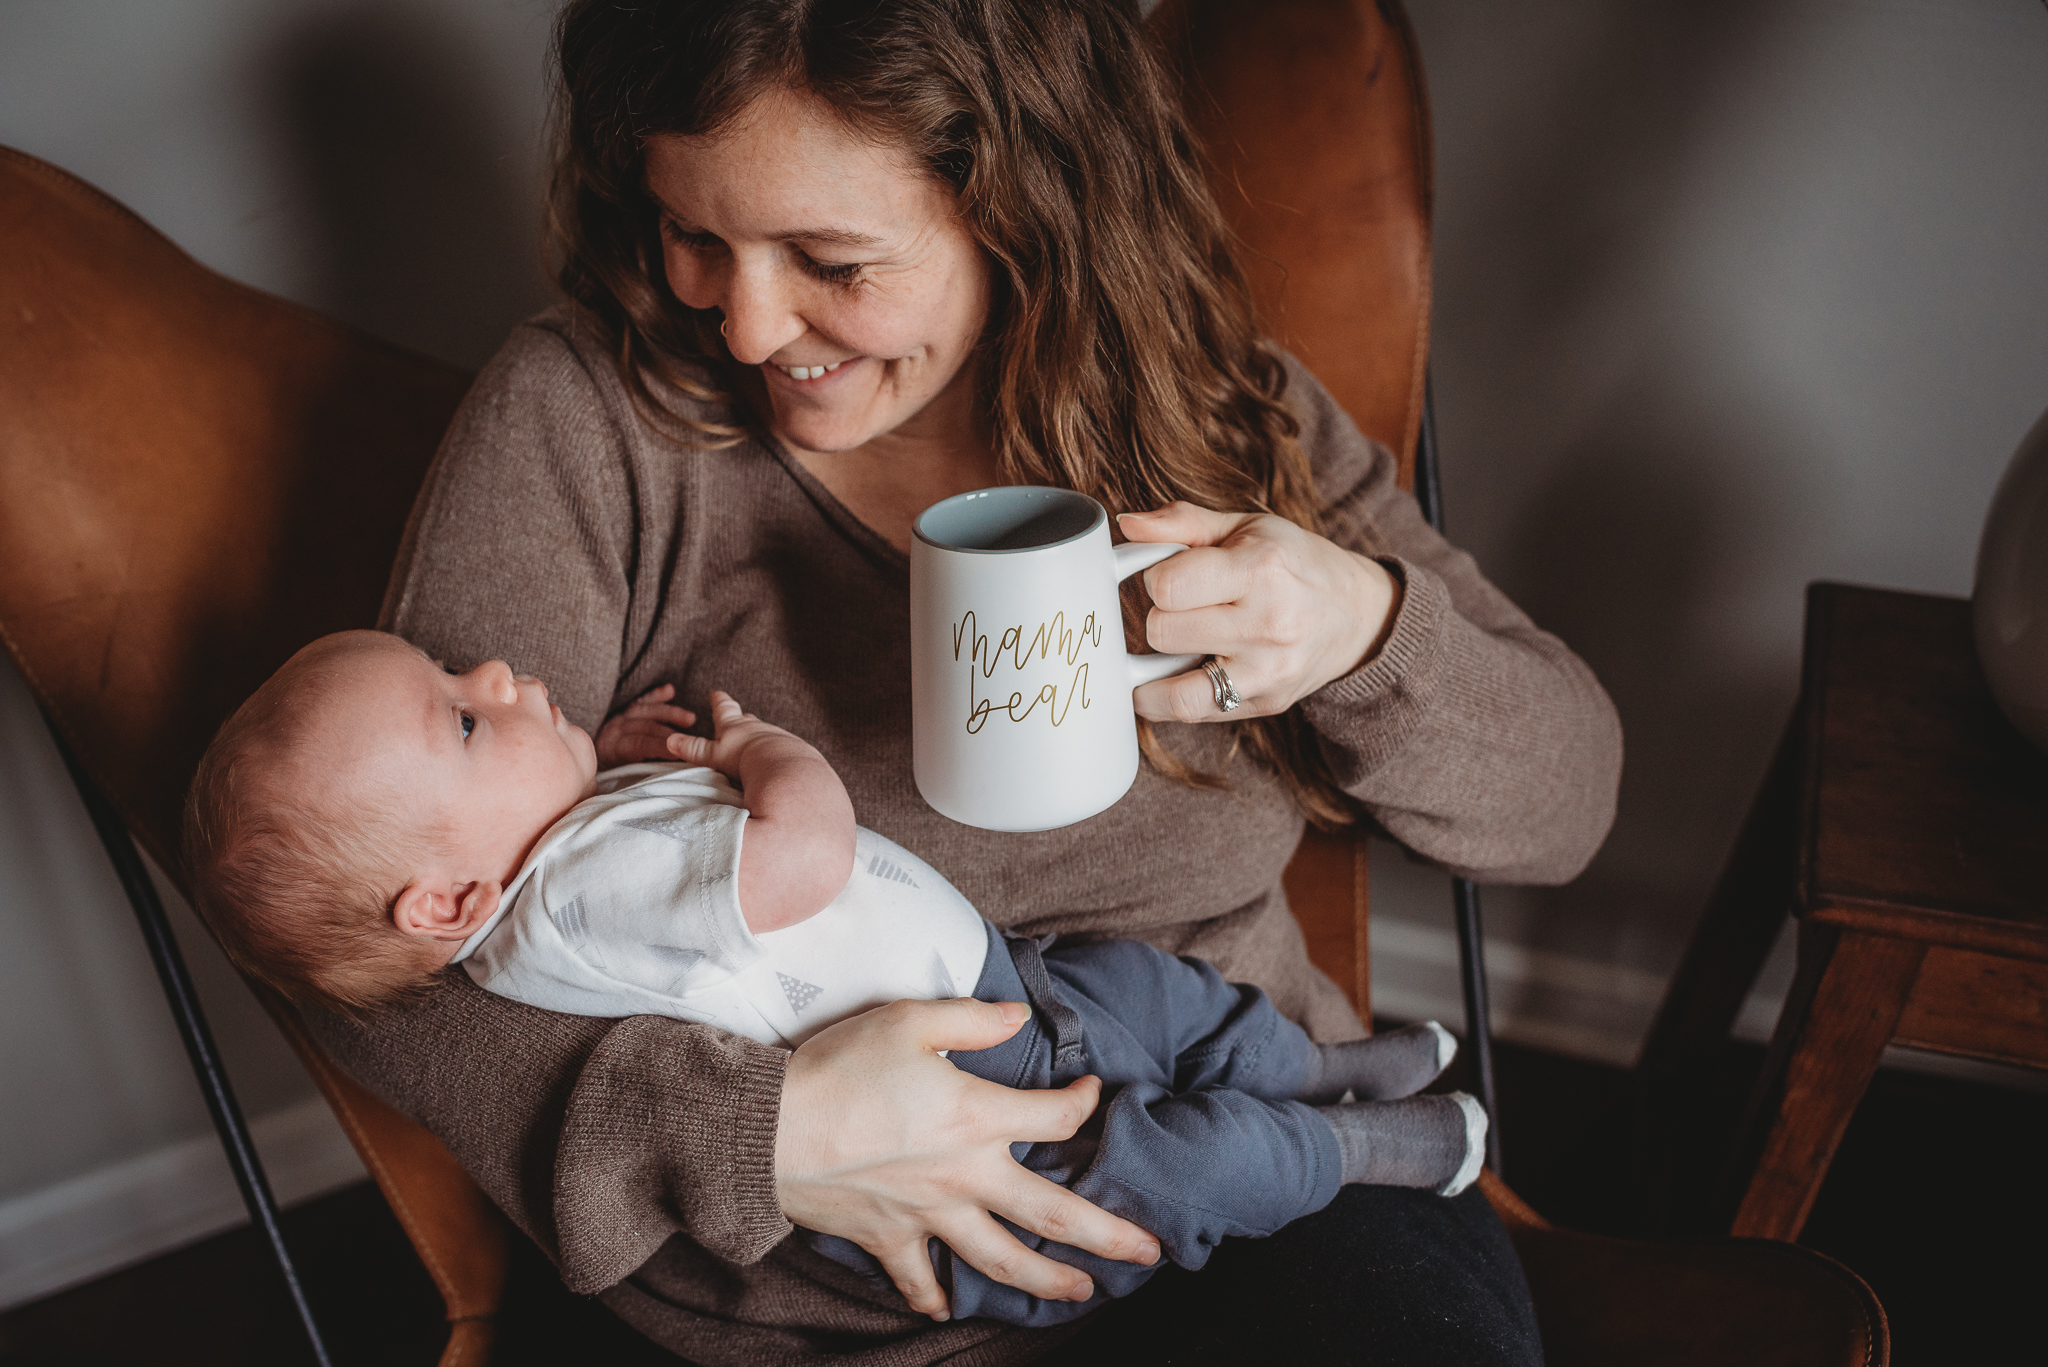 McKinseyMcCormick.Newborn.March2019.web-20.jpg